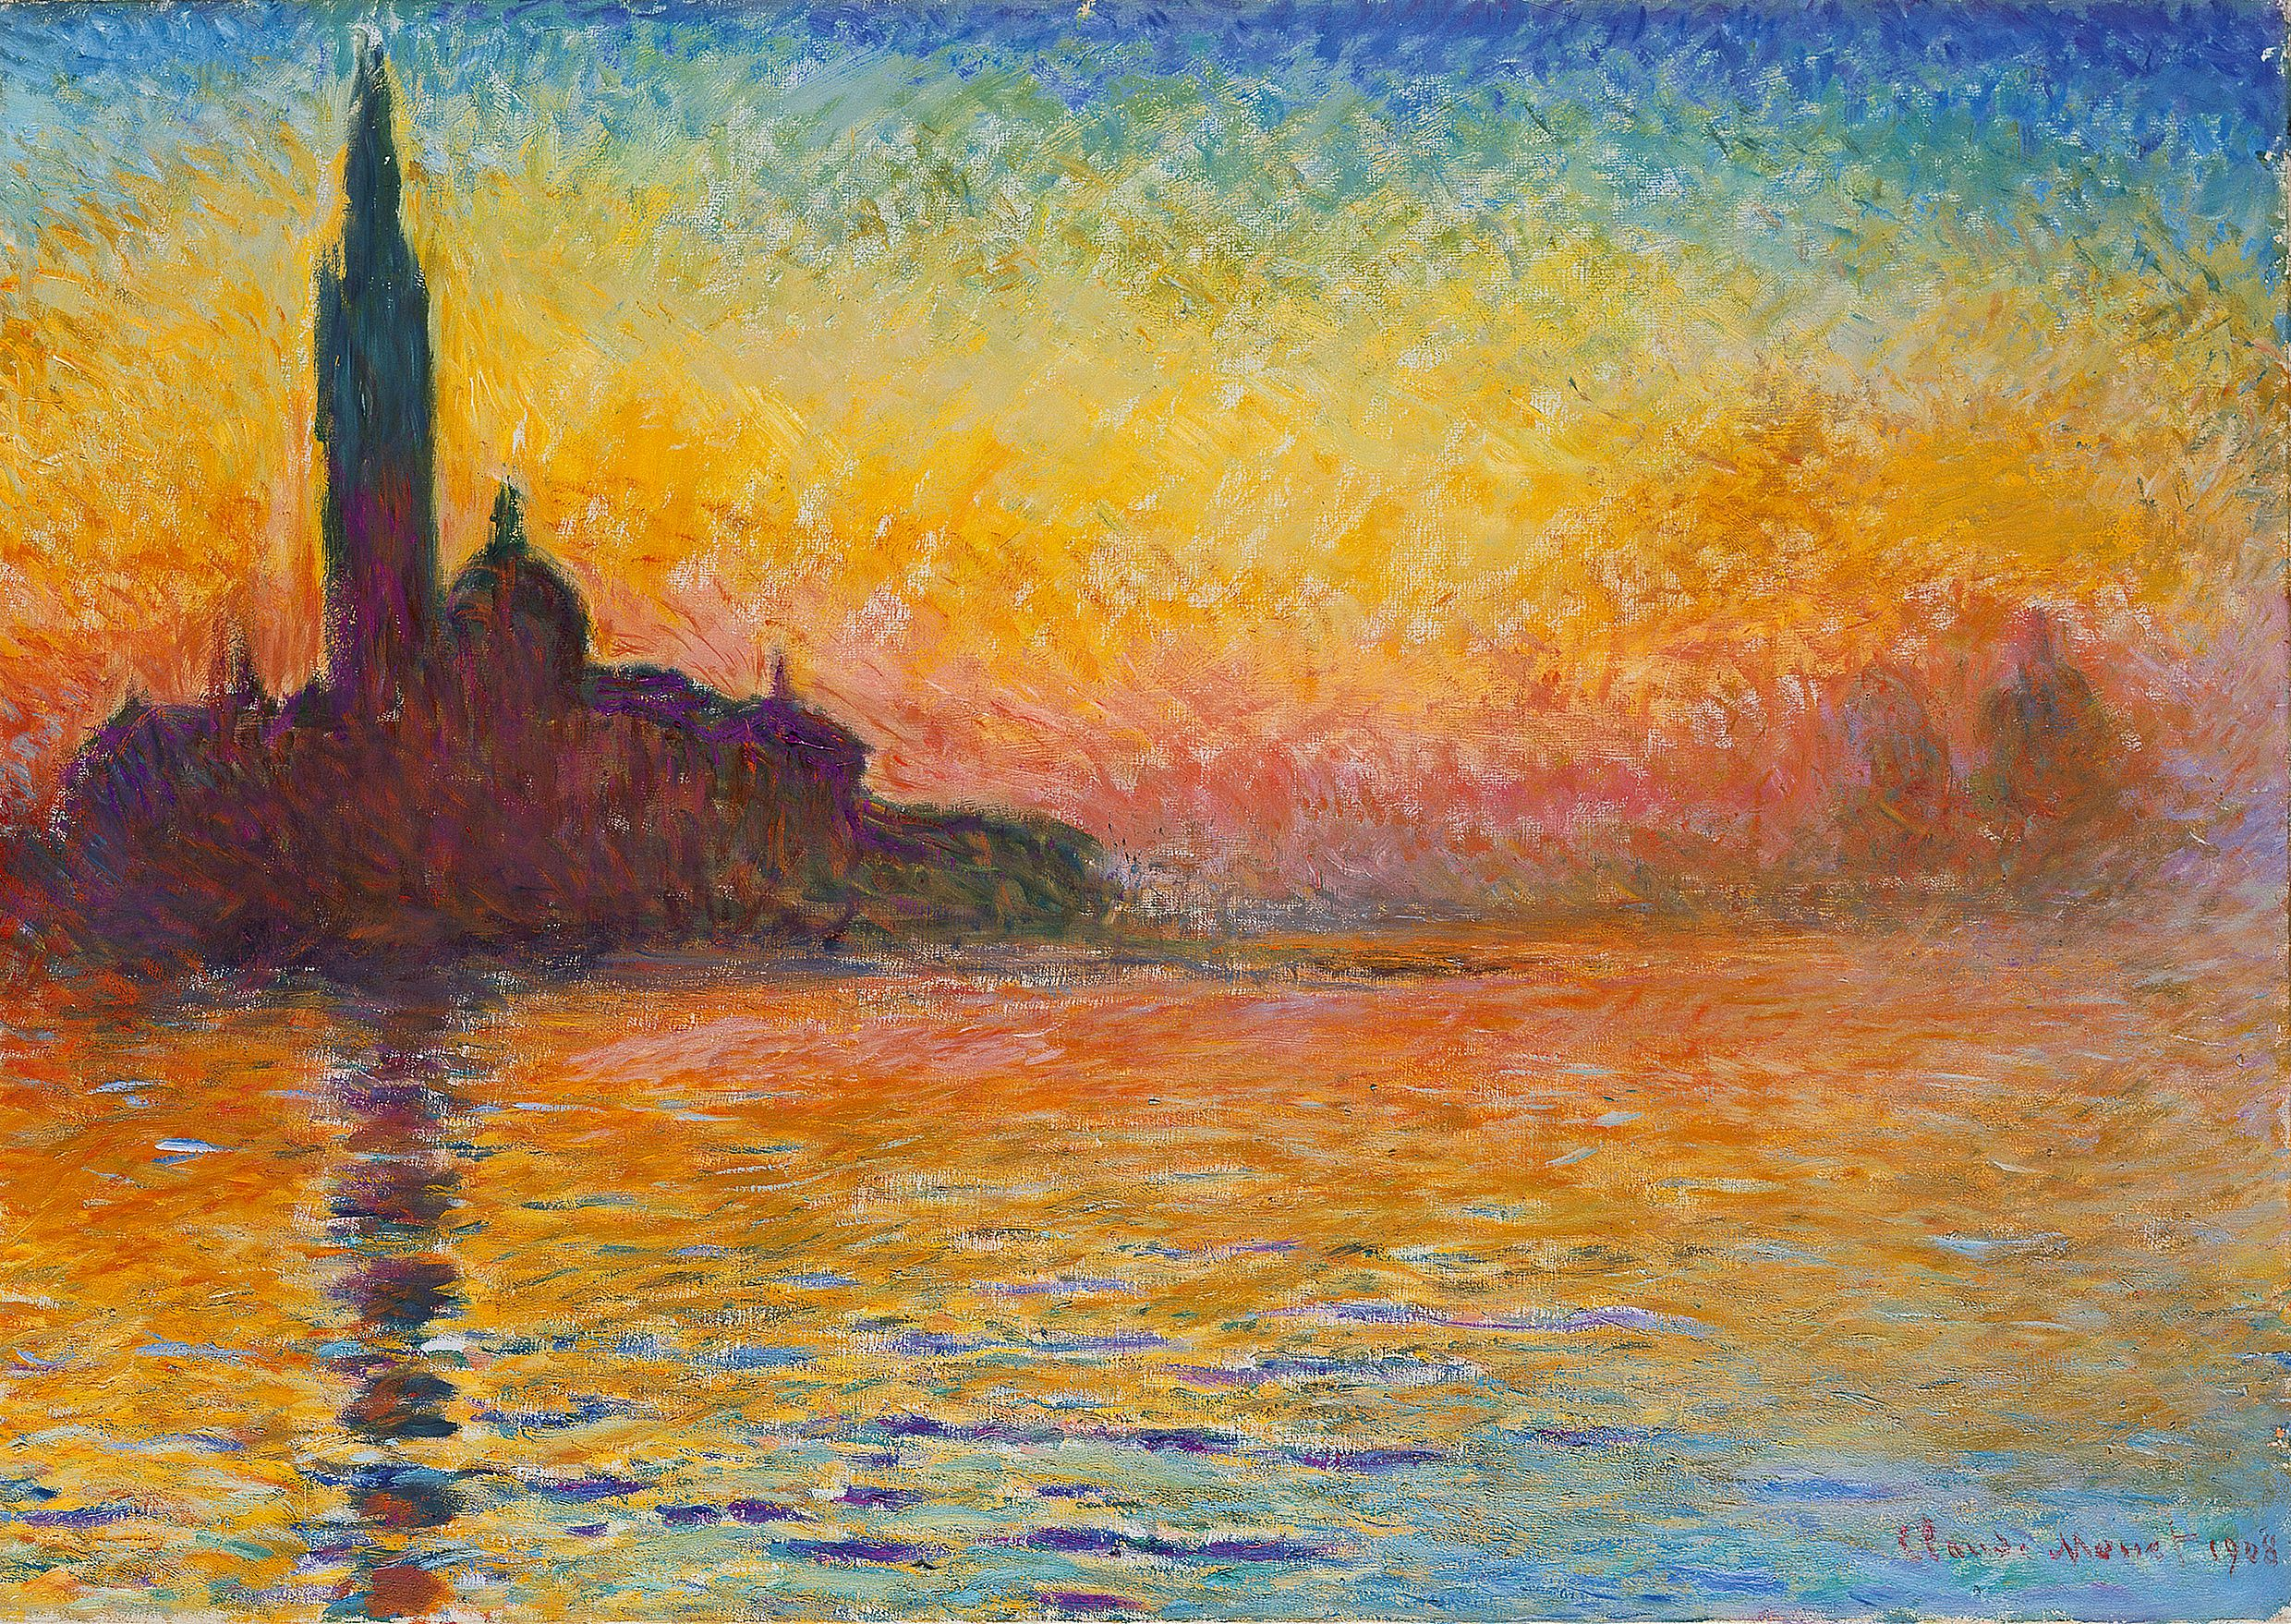 Monet, Saint-Georges majeur au crépuscule | Monet art, Claude monet  paintings, Monet oil paintings